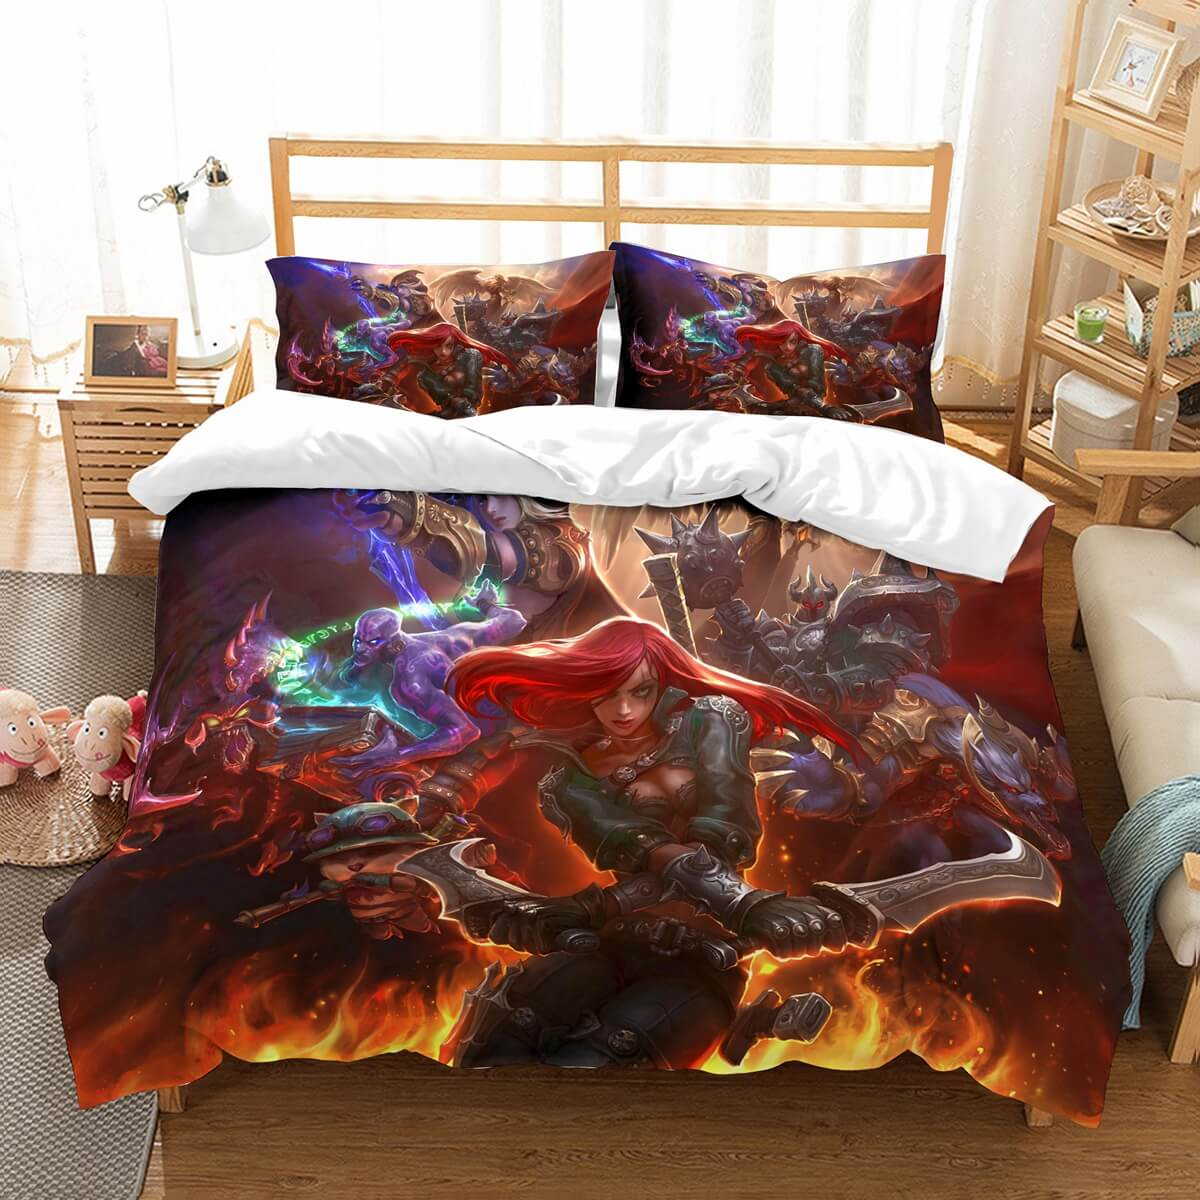 3D Customize League Of Legends Bedding Set Duvet Cover Set Bedroom Set Bedlinen